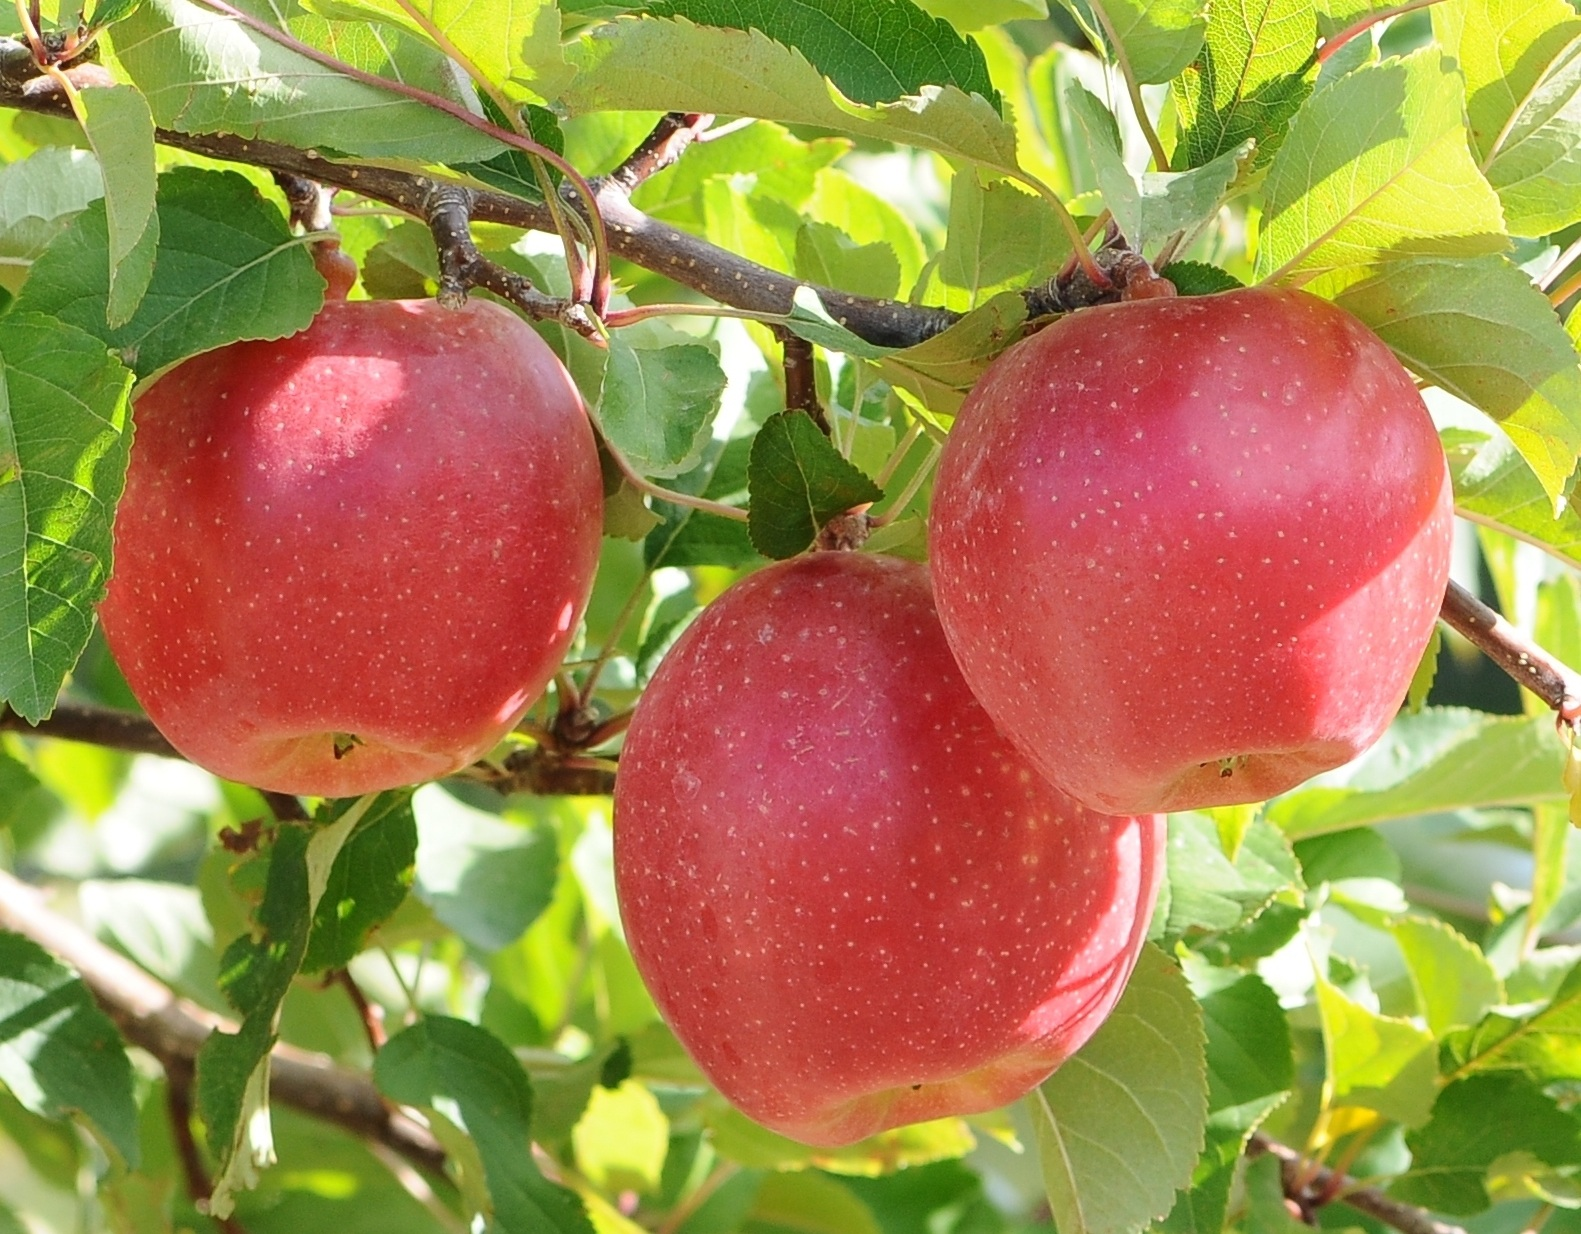 the apple variety trademarked Sunrise Magic that came out Kate Evan's program at WSU July 2020